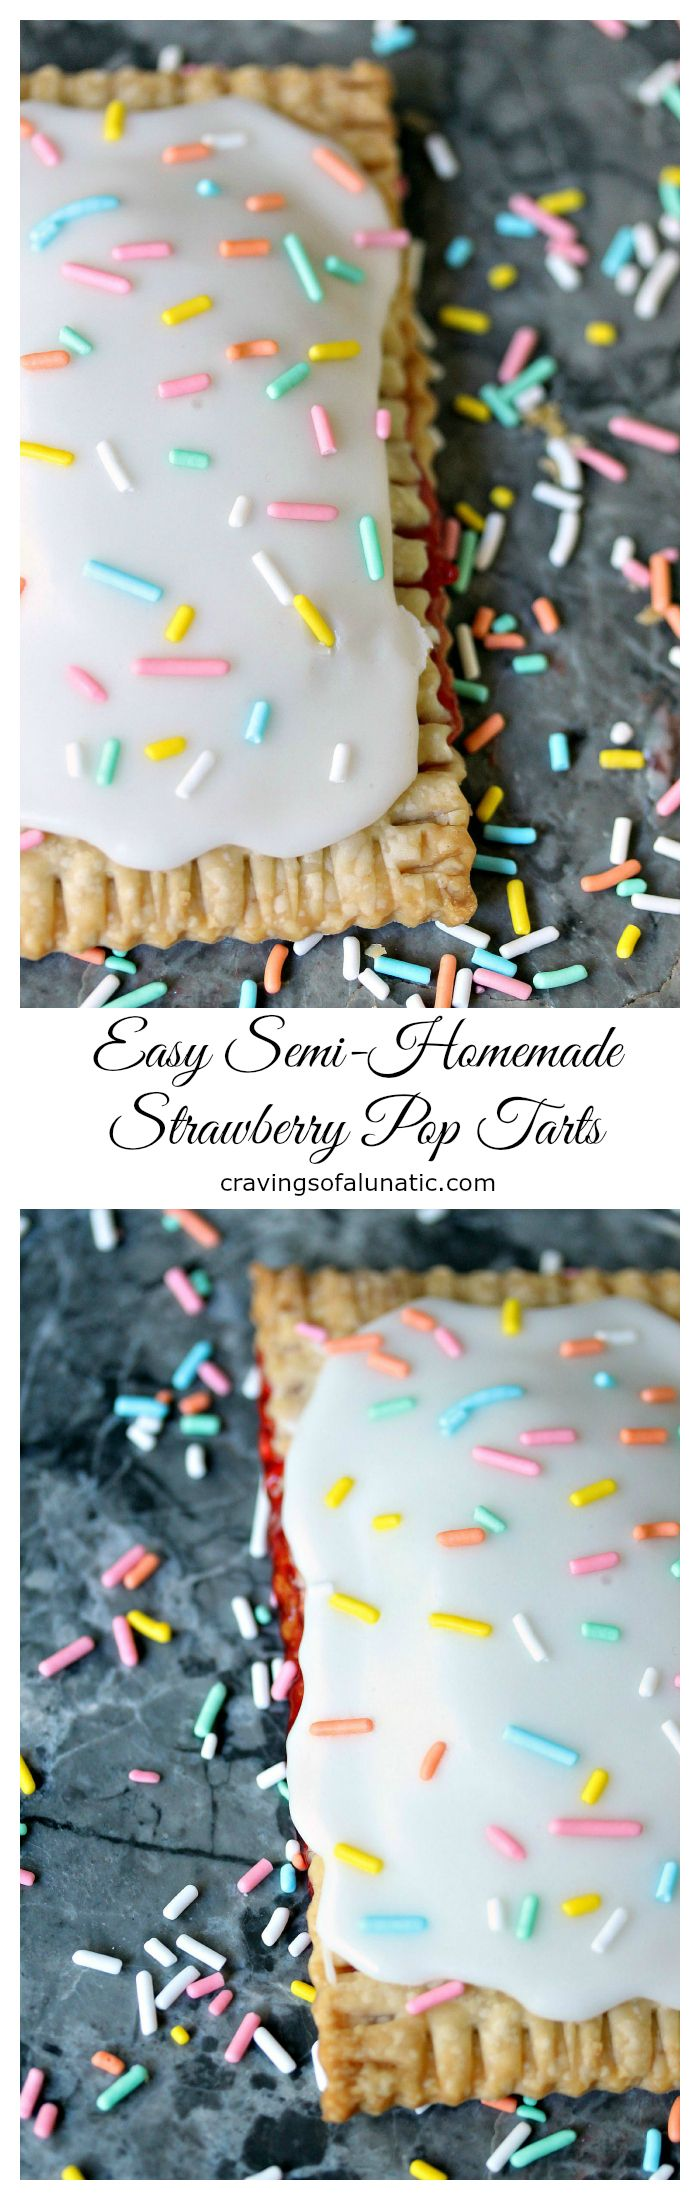 Easy Semi Homemade Strawberry Pop Tarts- These hand pies, aka homemade pop tarts, are super easy to make. Only a few ingredients and you have fresh pies out of the oven and ready to eat in under 30 minutes. Less if you're speedy!